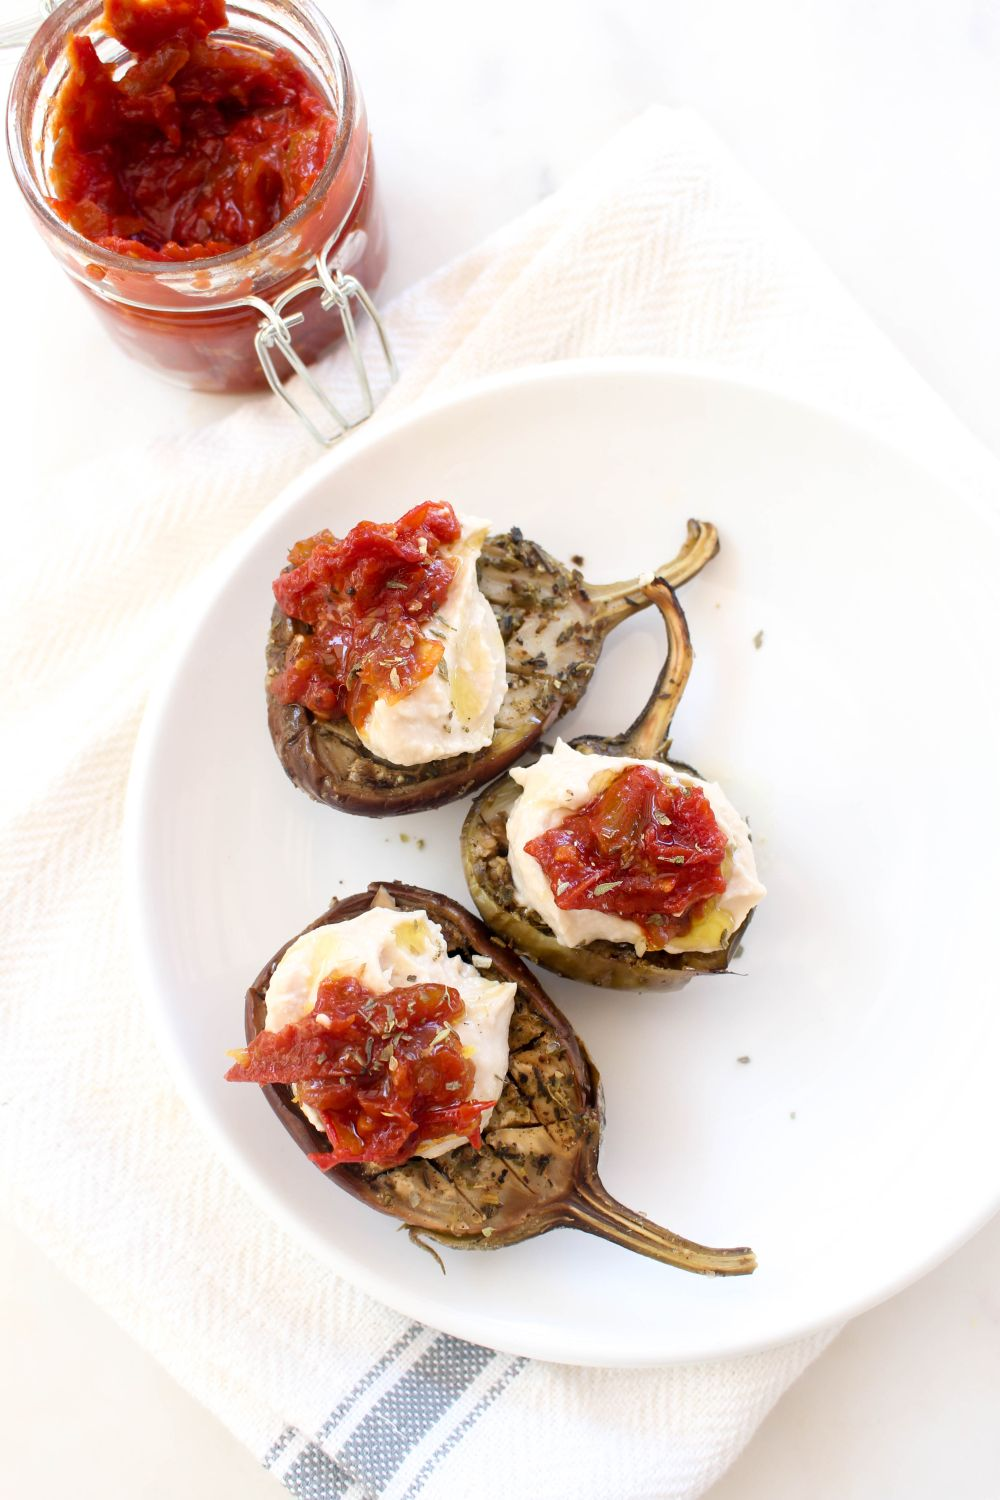 Slow roasted eggplant with hummus and tomato jam